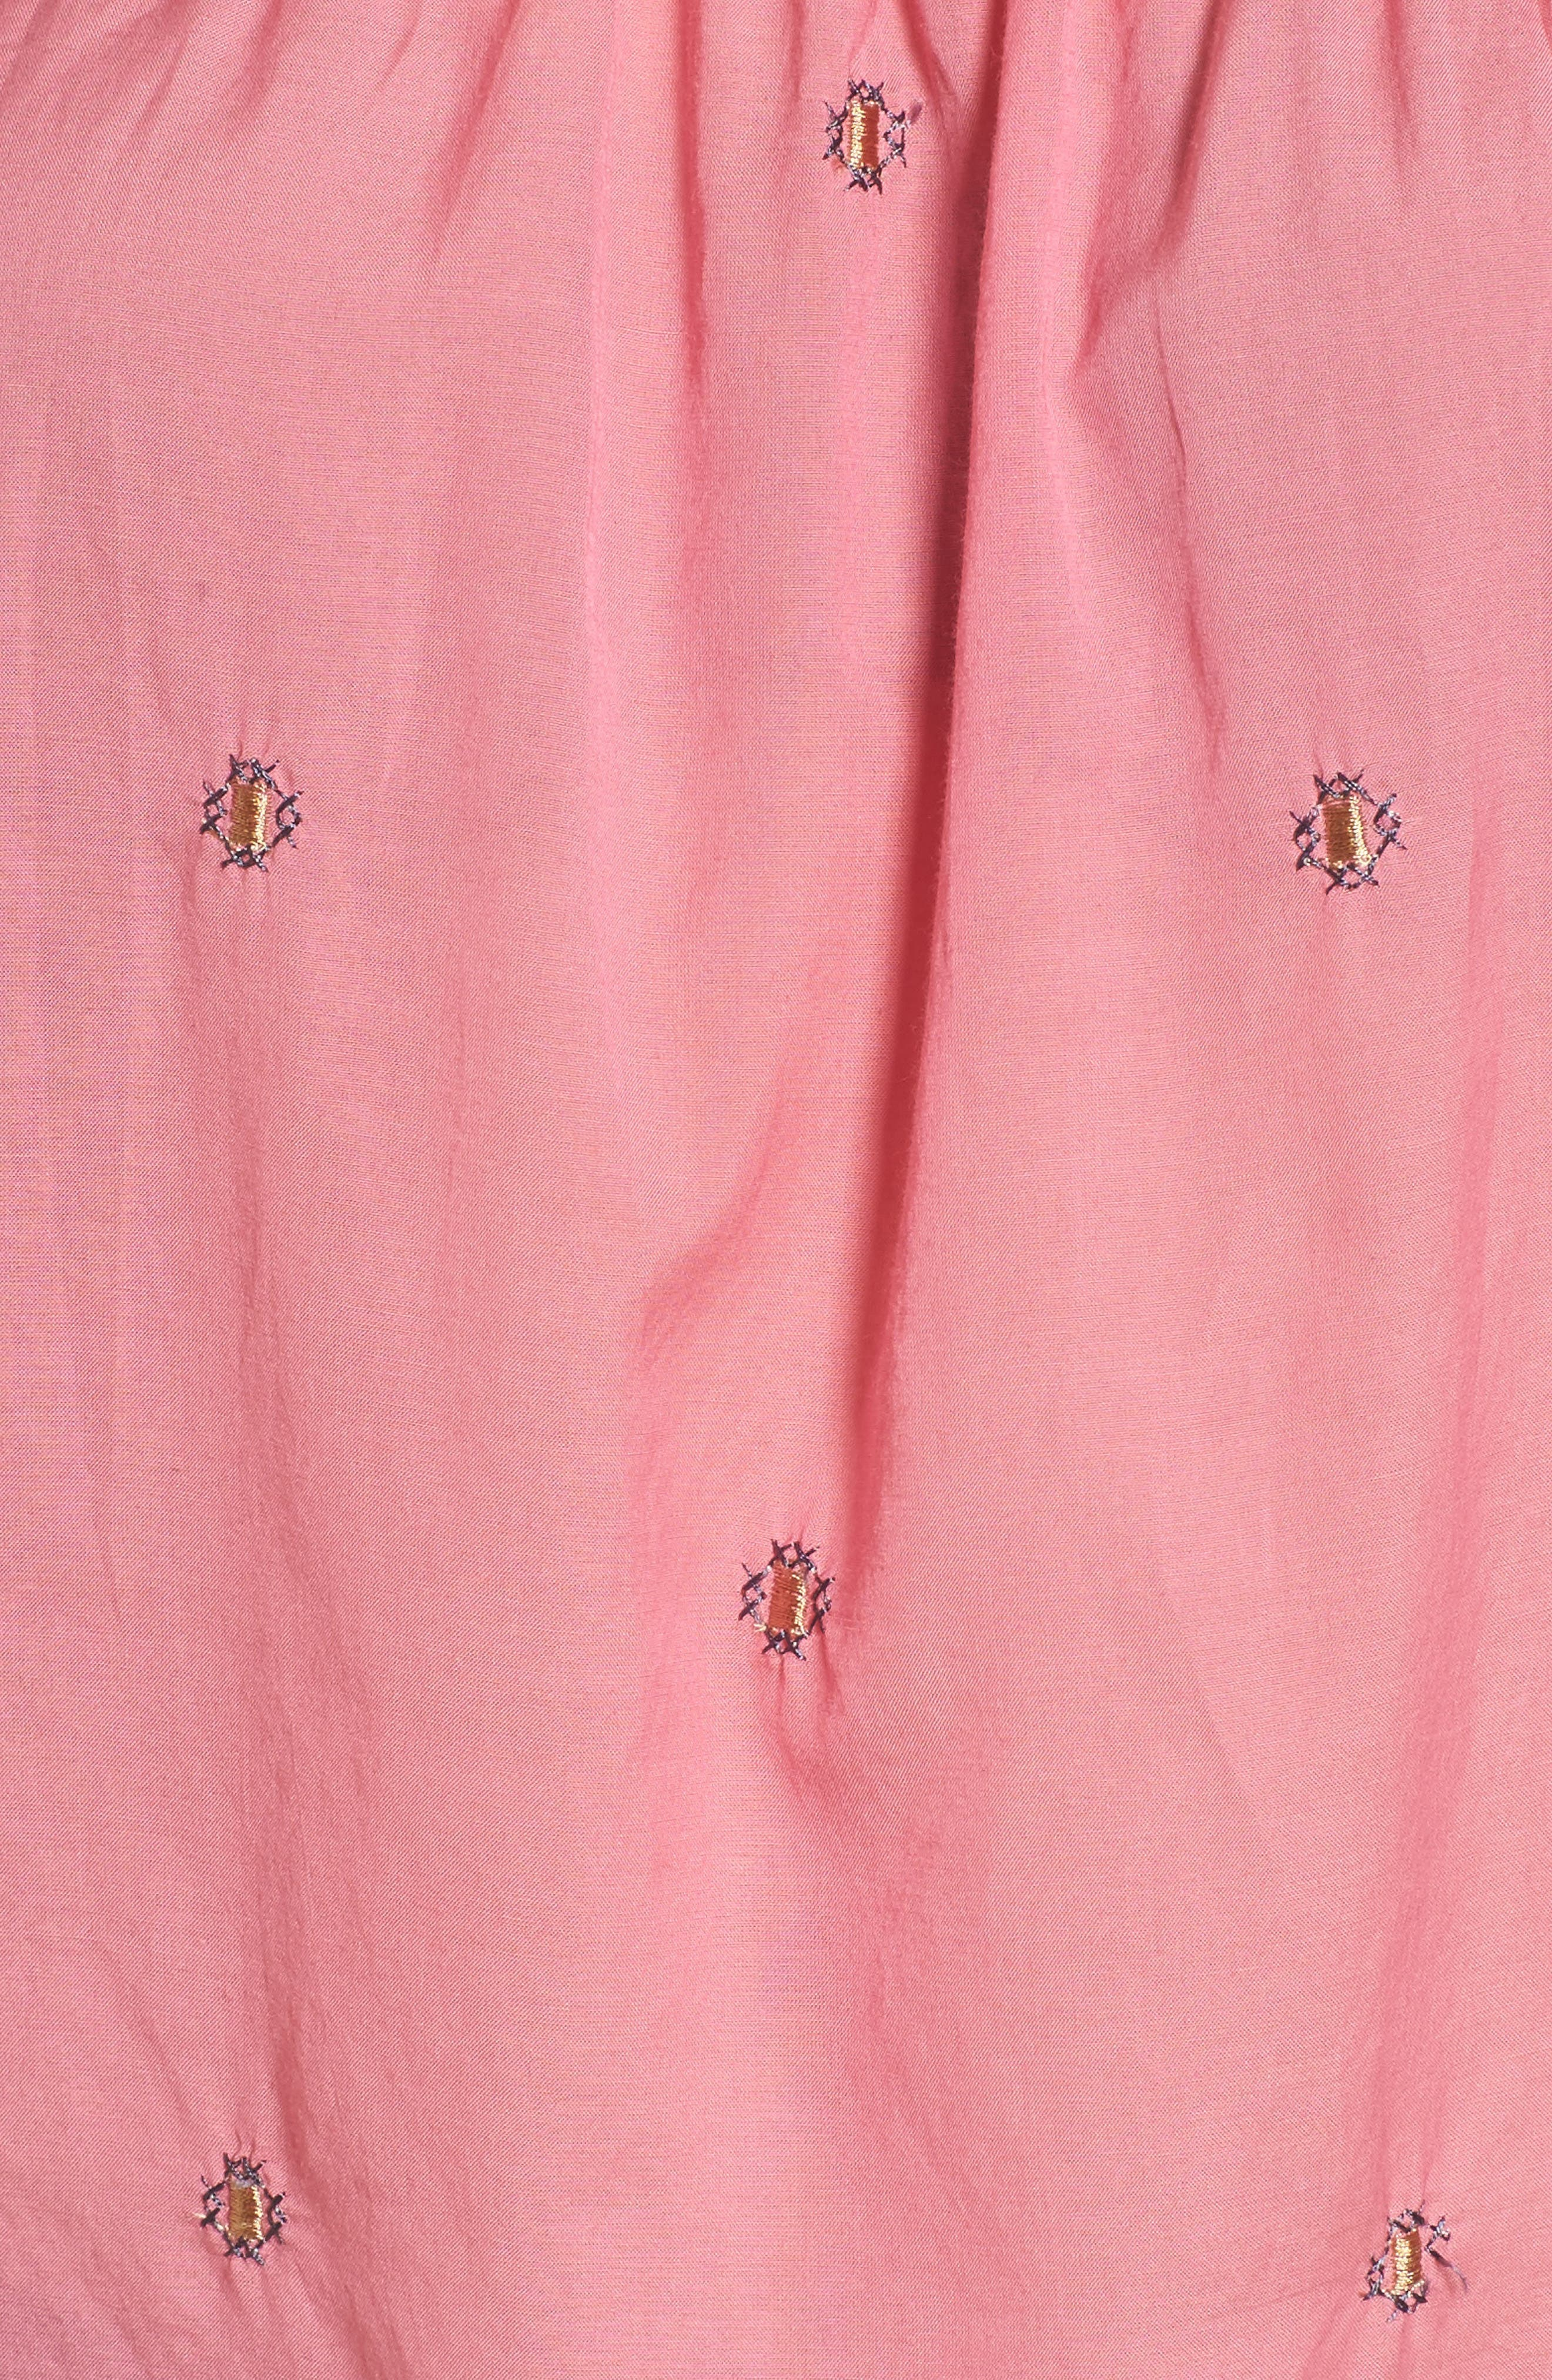 Embroidered Off the Shoulder Top,                             Alternate thumbnail 5, color,                             Flamingo Pink